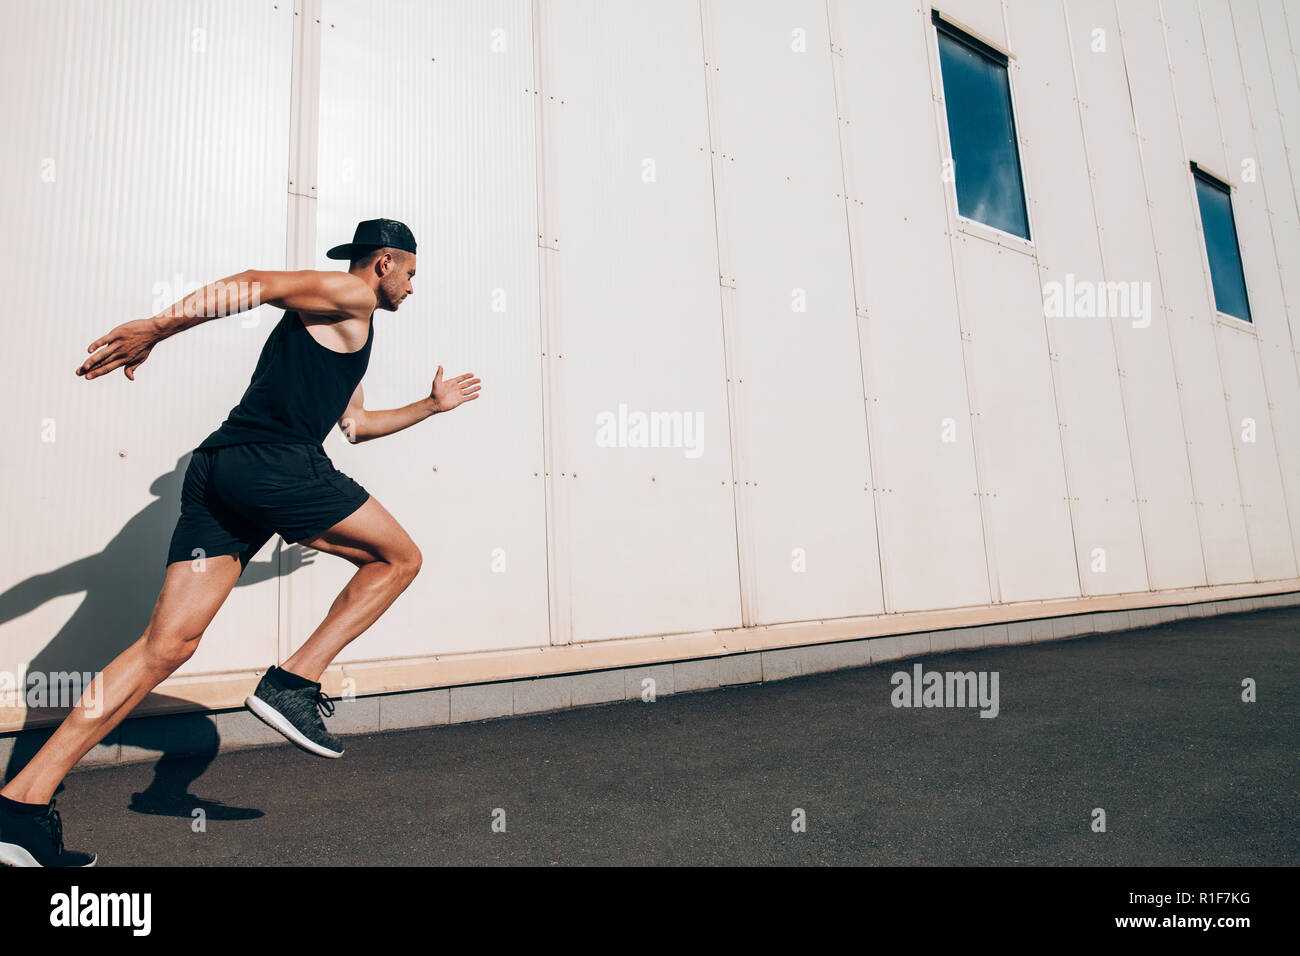 Sporty man runner running in city sreet. Sport, health, fitness, jogging - Stock Image